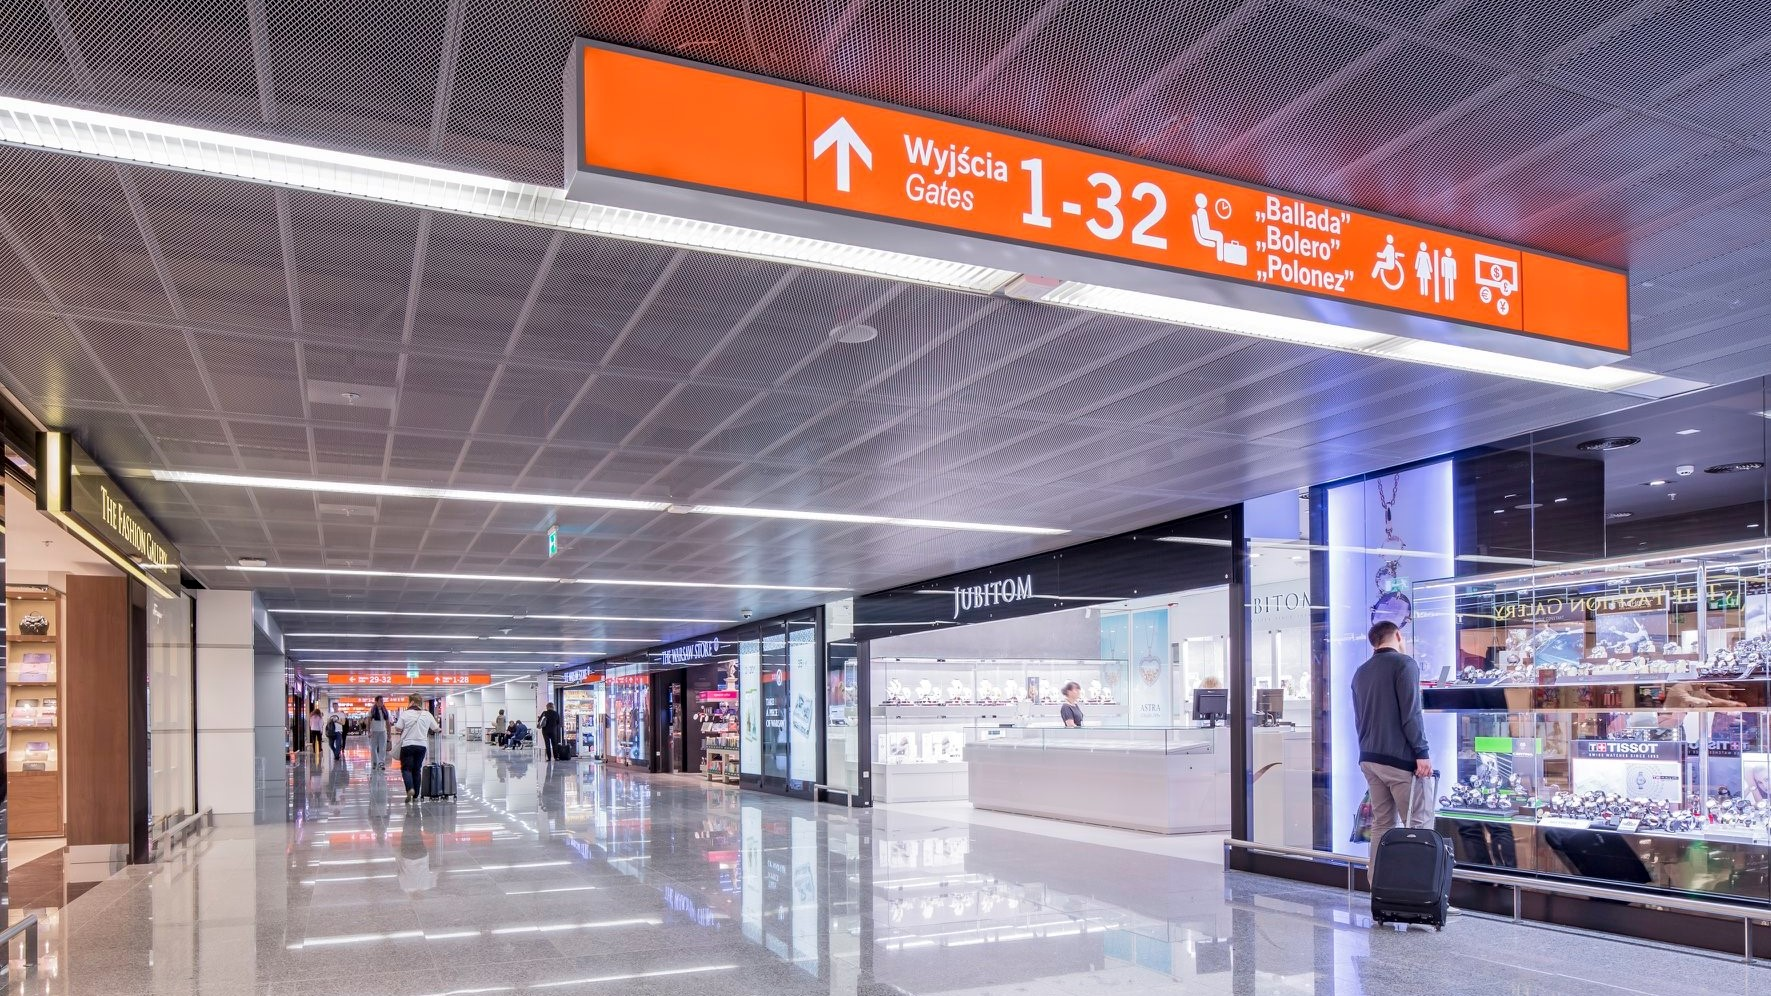 Transit zone of the Warsaw Chopin Airport in Poland